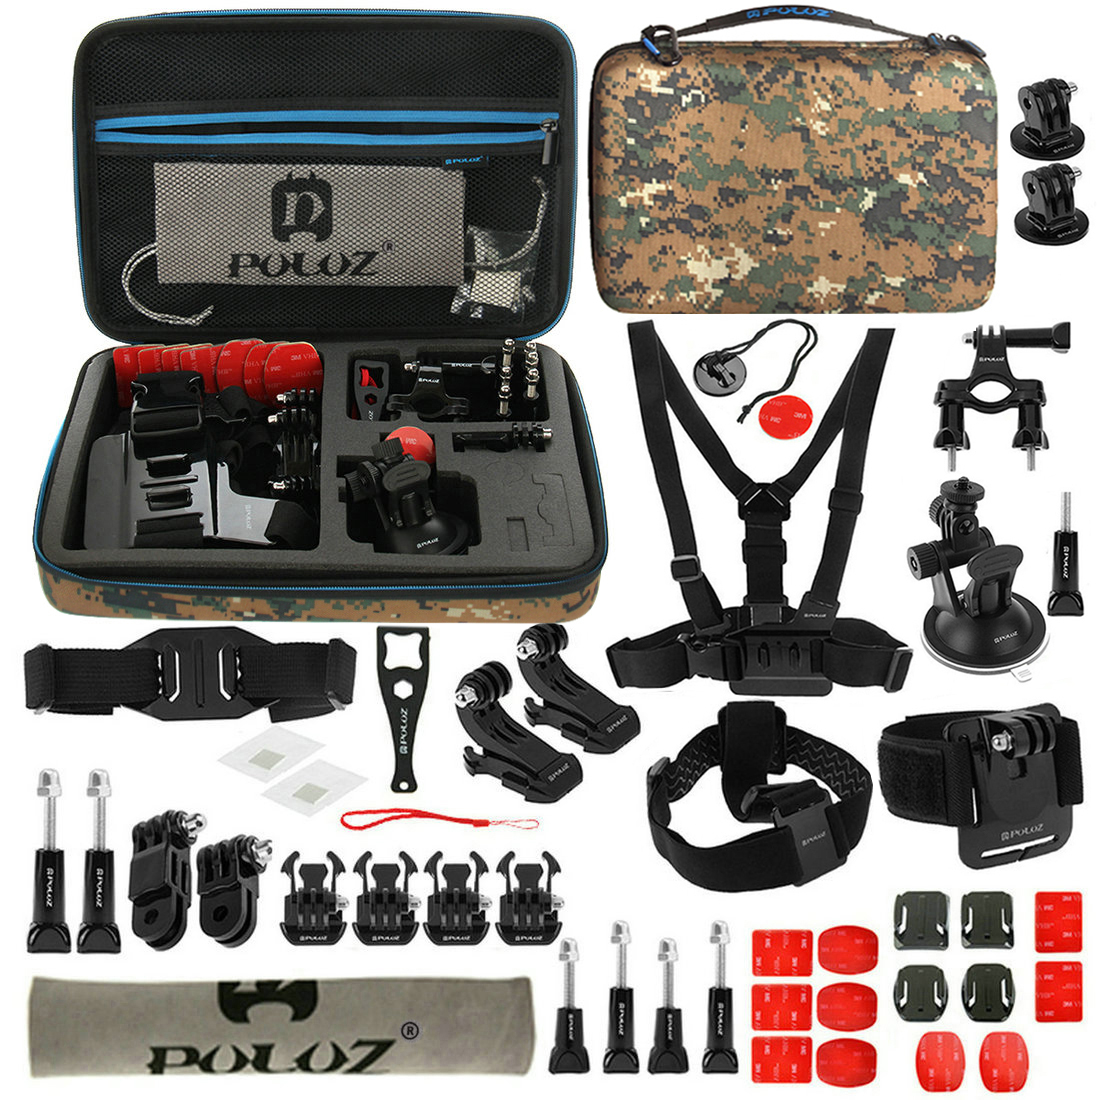 PULUZ PKT29 45 in 1 Accessories Combo Kit Mount Screw with Storage Case for Action Sportscamera